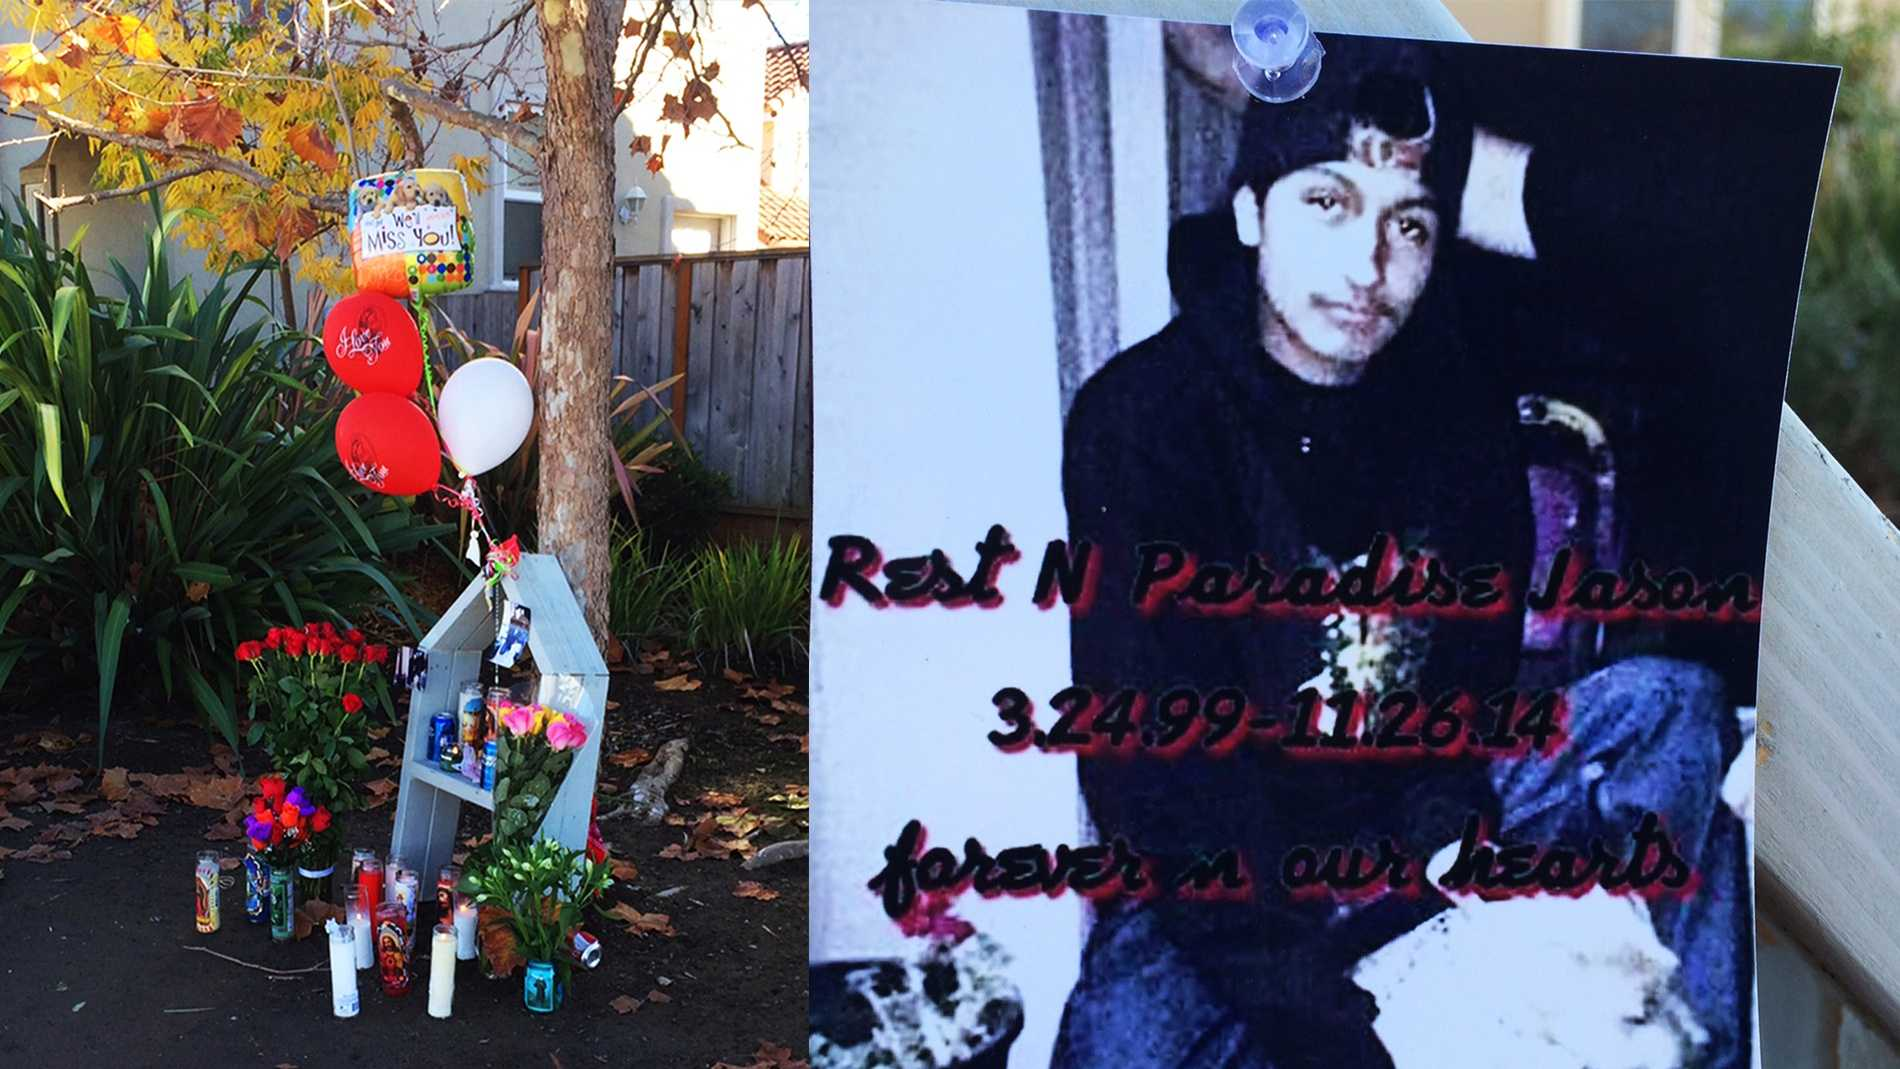 A memorial was made for 15-year-old Jason Reyes where he was killed.